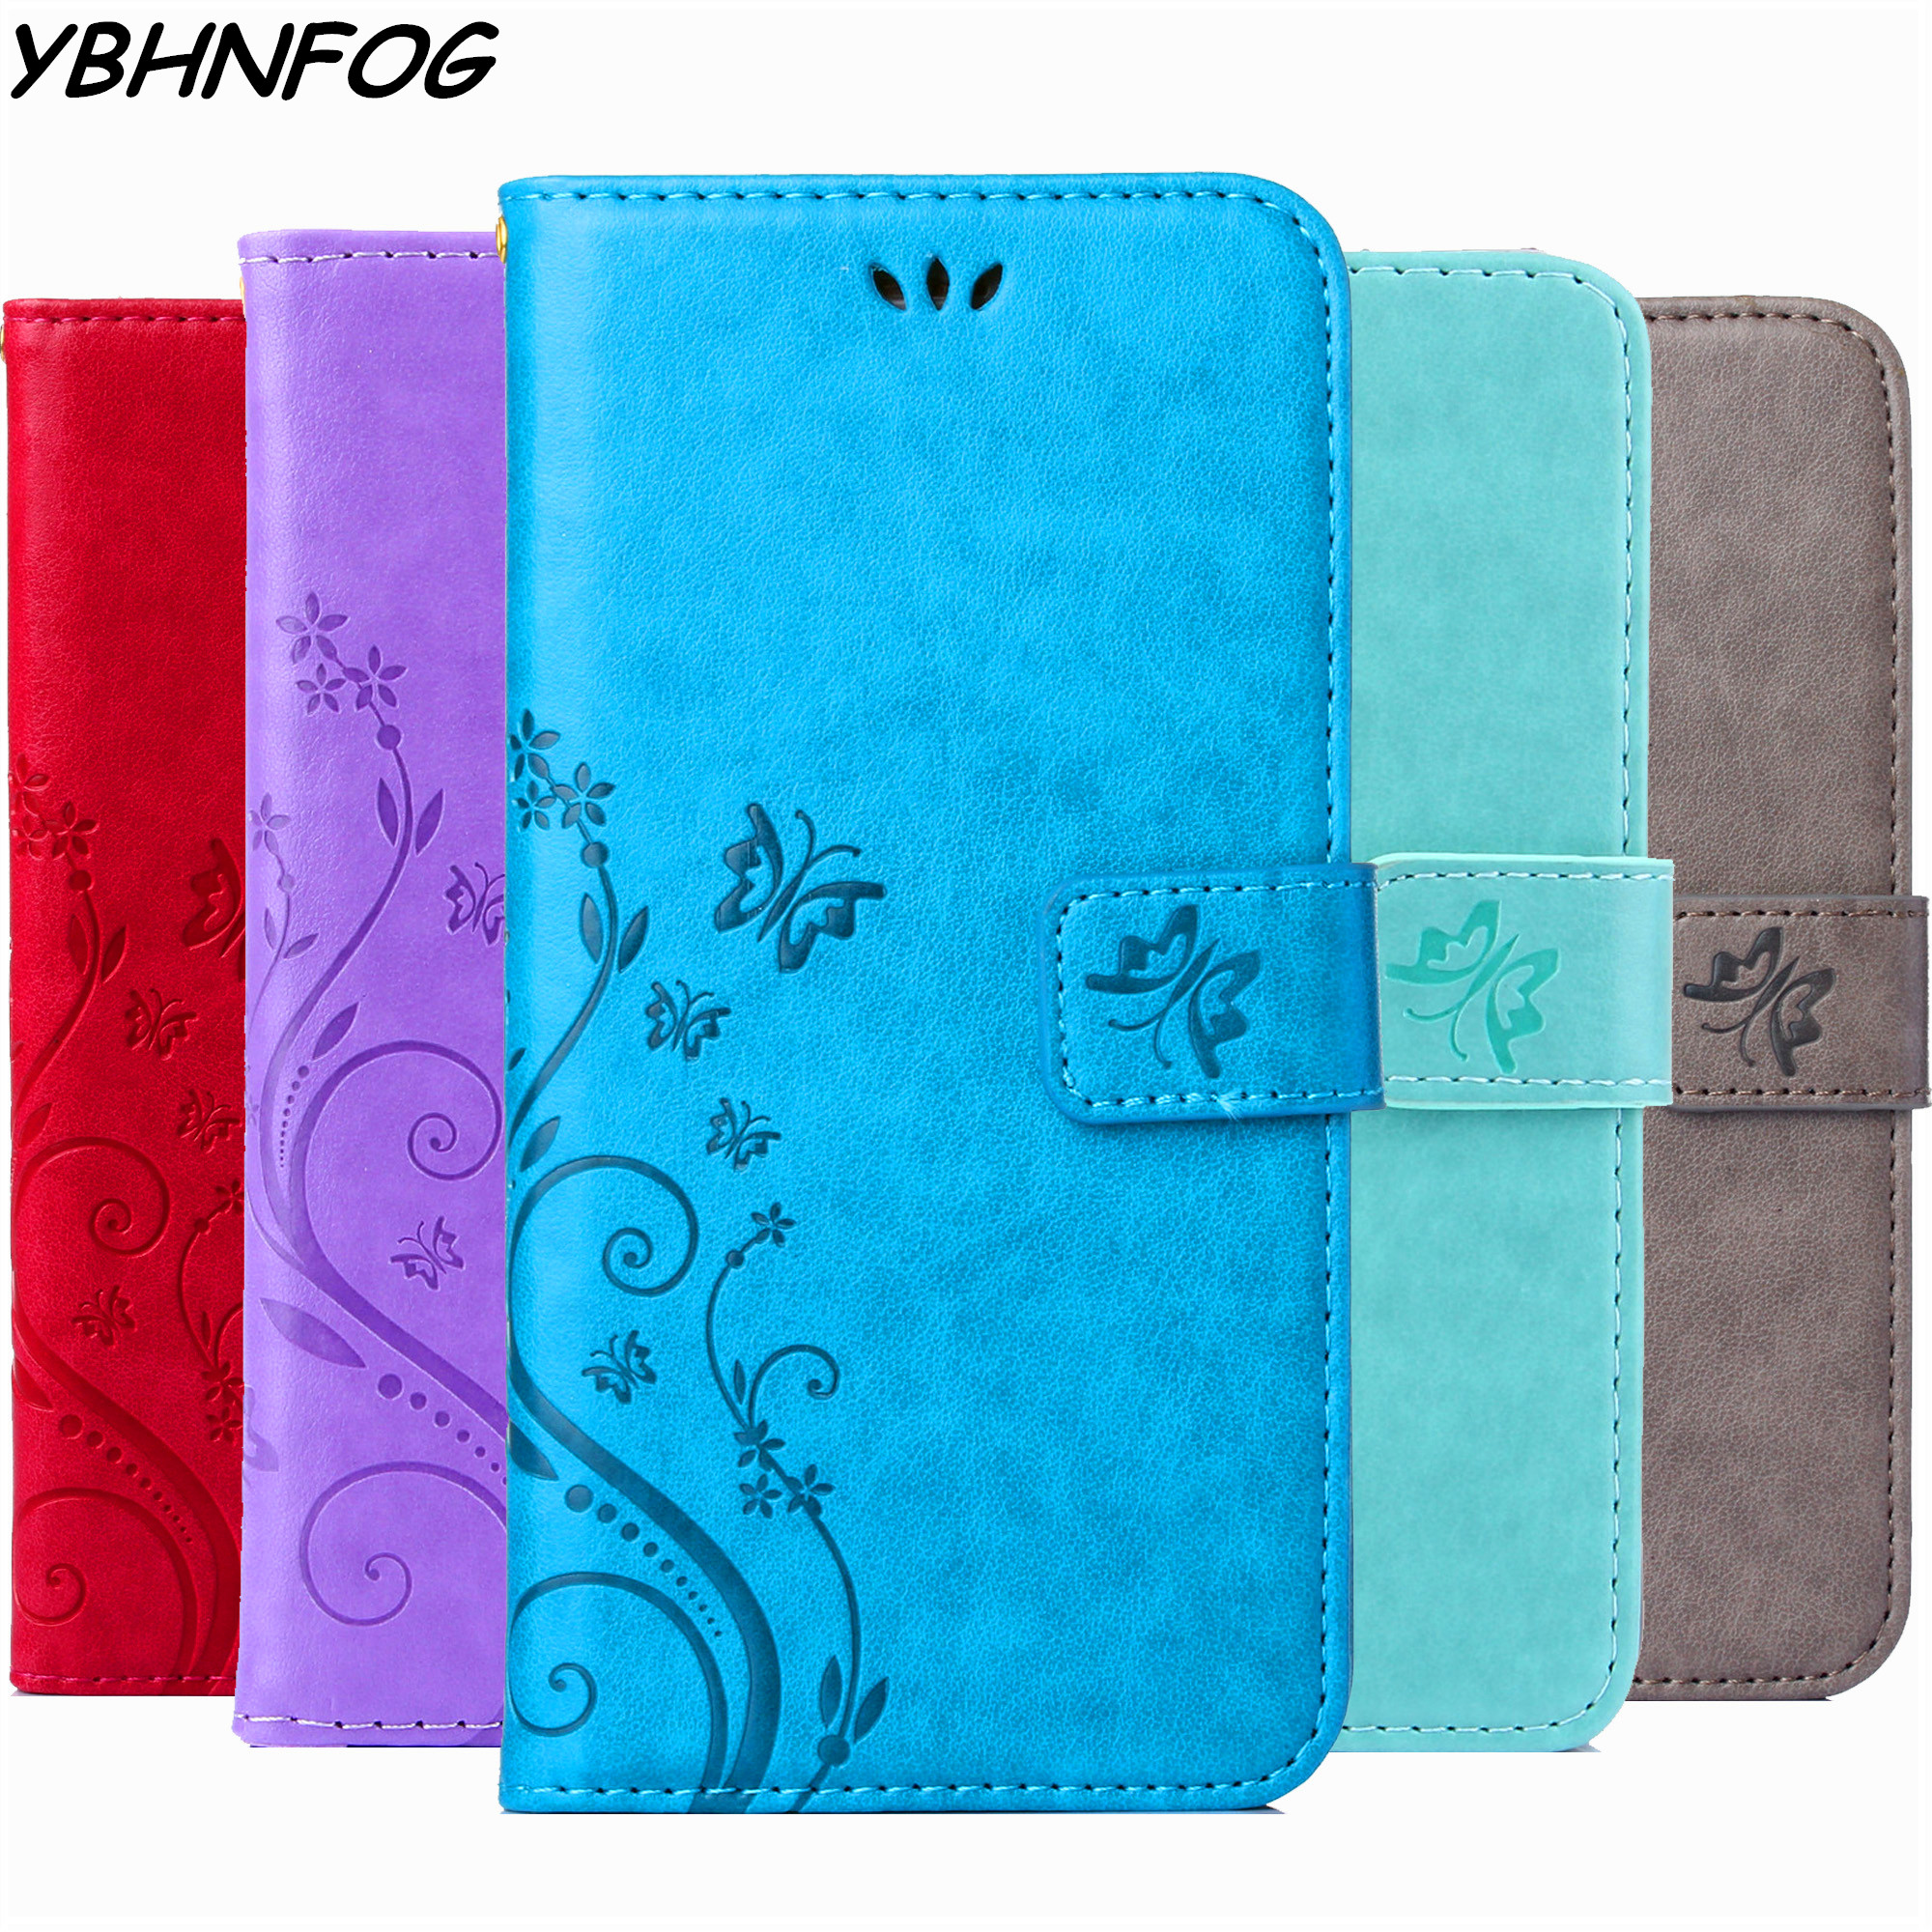 Flip <font><b>Case</b></font> For <font><b>Samsung</b></font> Galaxy S10e S8 S9 Plus S6 S7 Edge PU <font><b>Leather</b></font> Wallet Cover Stand Phone Bags For <font><b>Samsung</b></font> S3 S4 <font><b>S5</b></font> Mini <font><b>Case</b></font> image